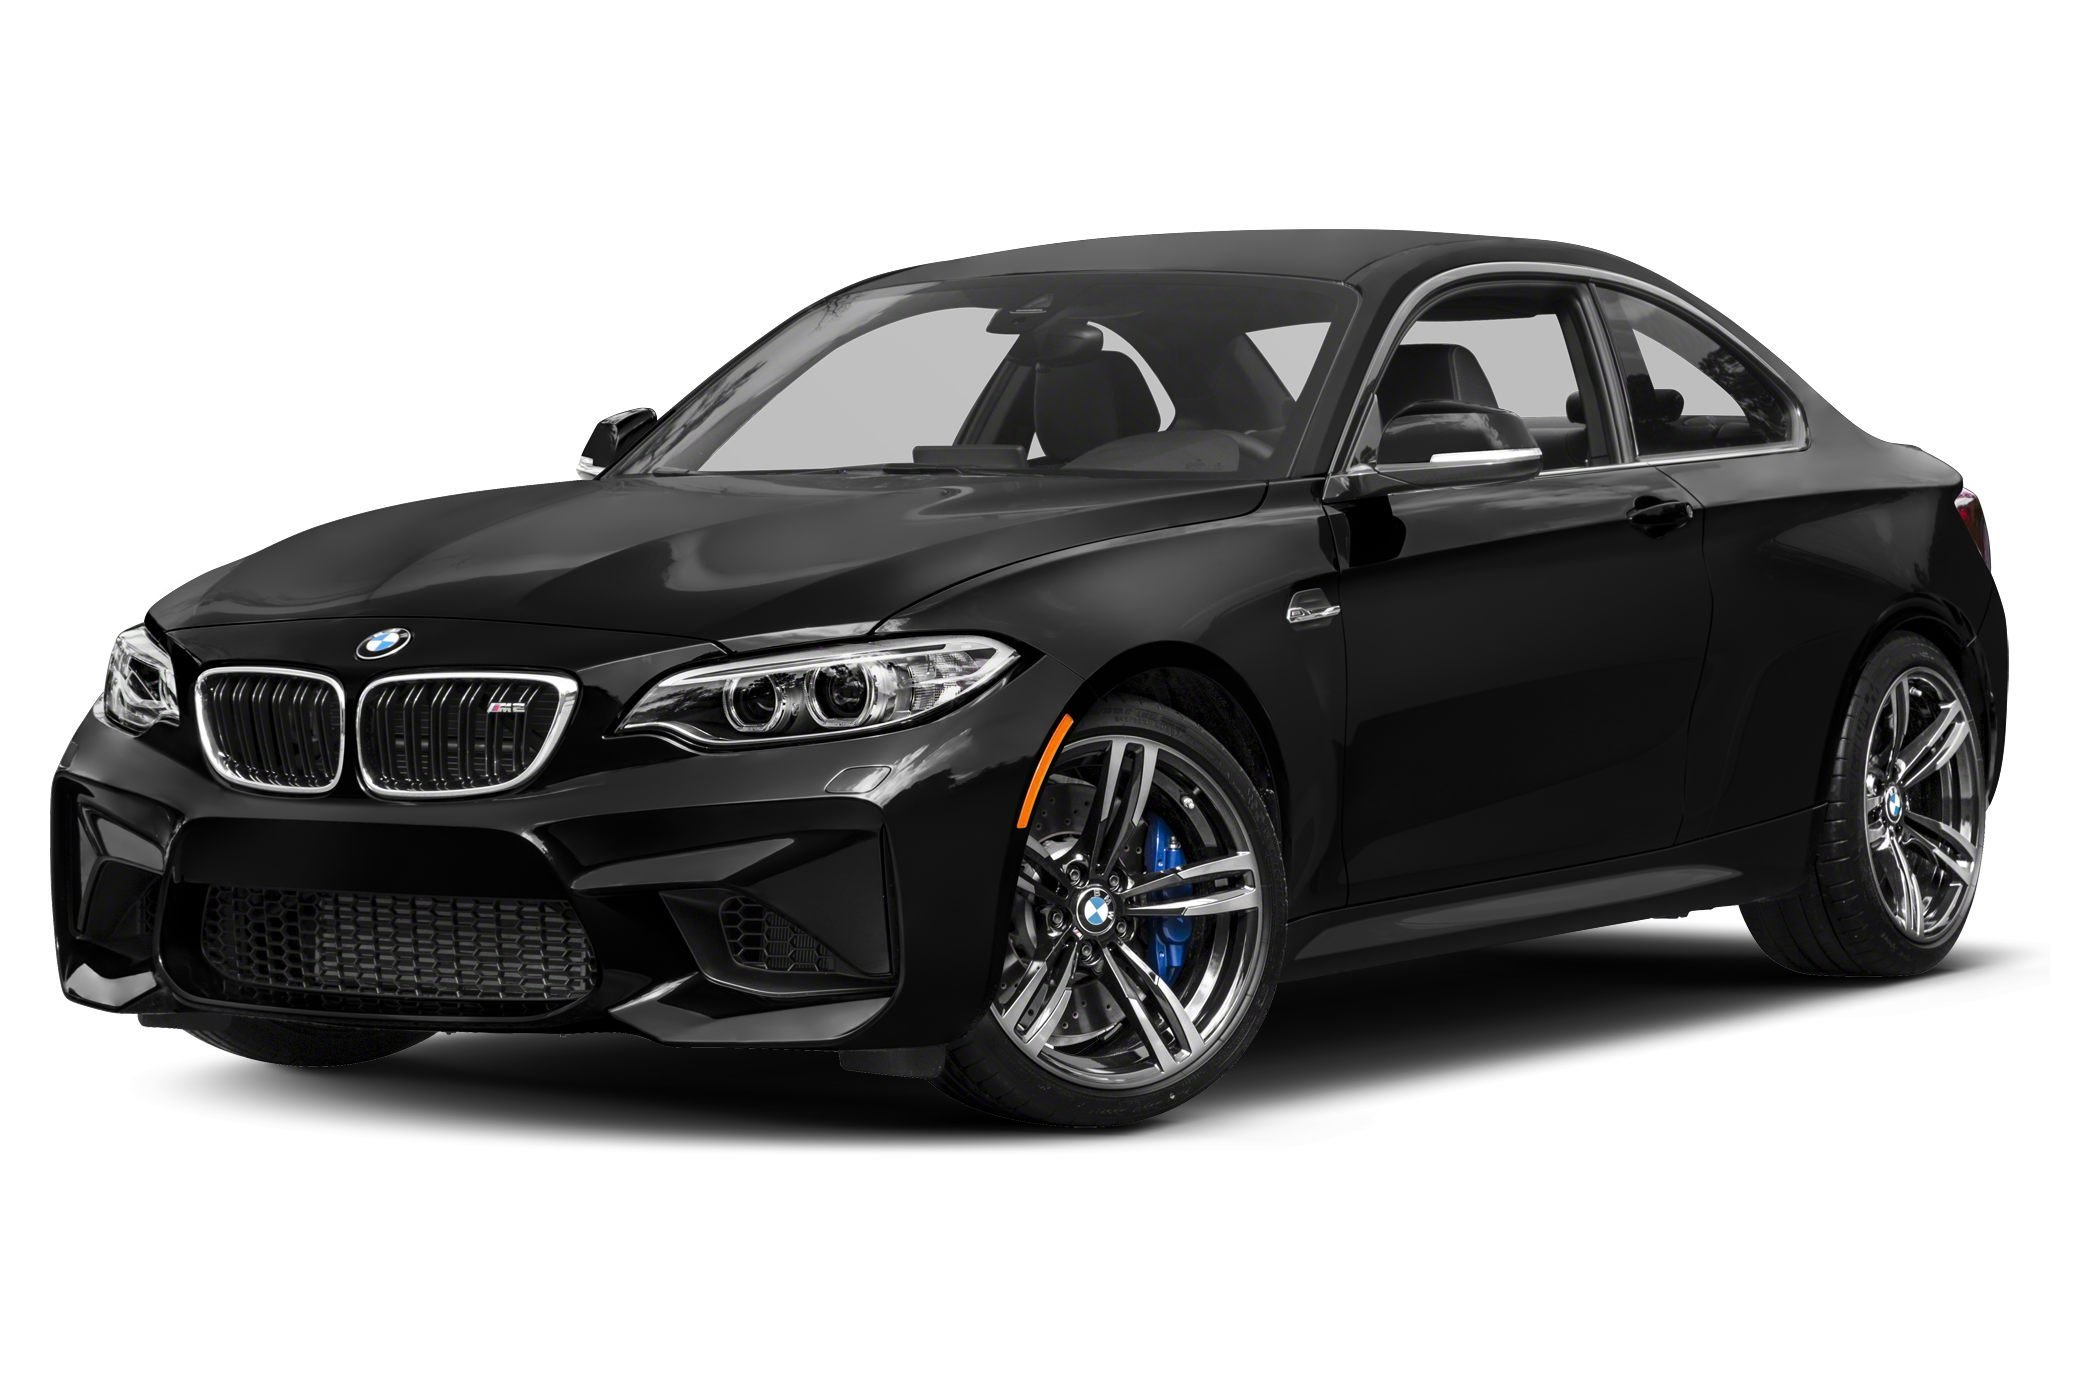 Latest Bmw M2 Prototype Suggests Special Model Or Early Facelift Free Download